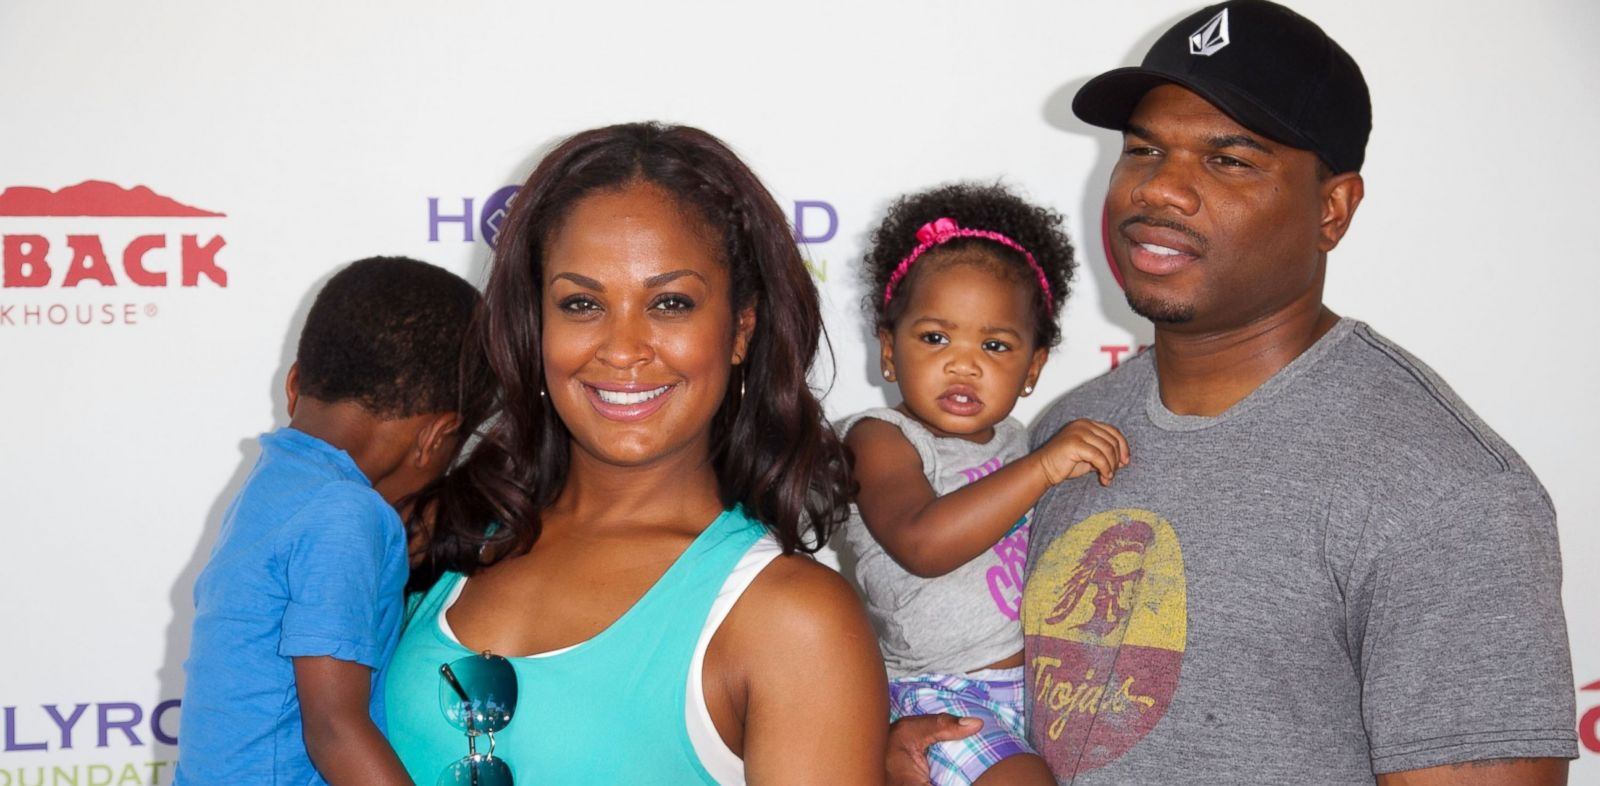 PHOTO: In this file photo, Curtis Conway Jr., Laila Ali, Sydney Conway, and Curtis Conway, left to right, are pictured on Aug. 12, 2012 in Culver City, Calif.